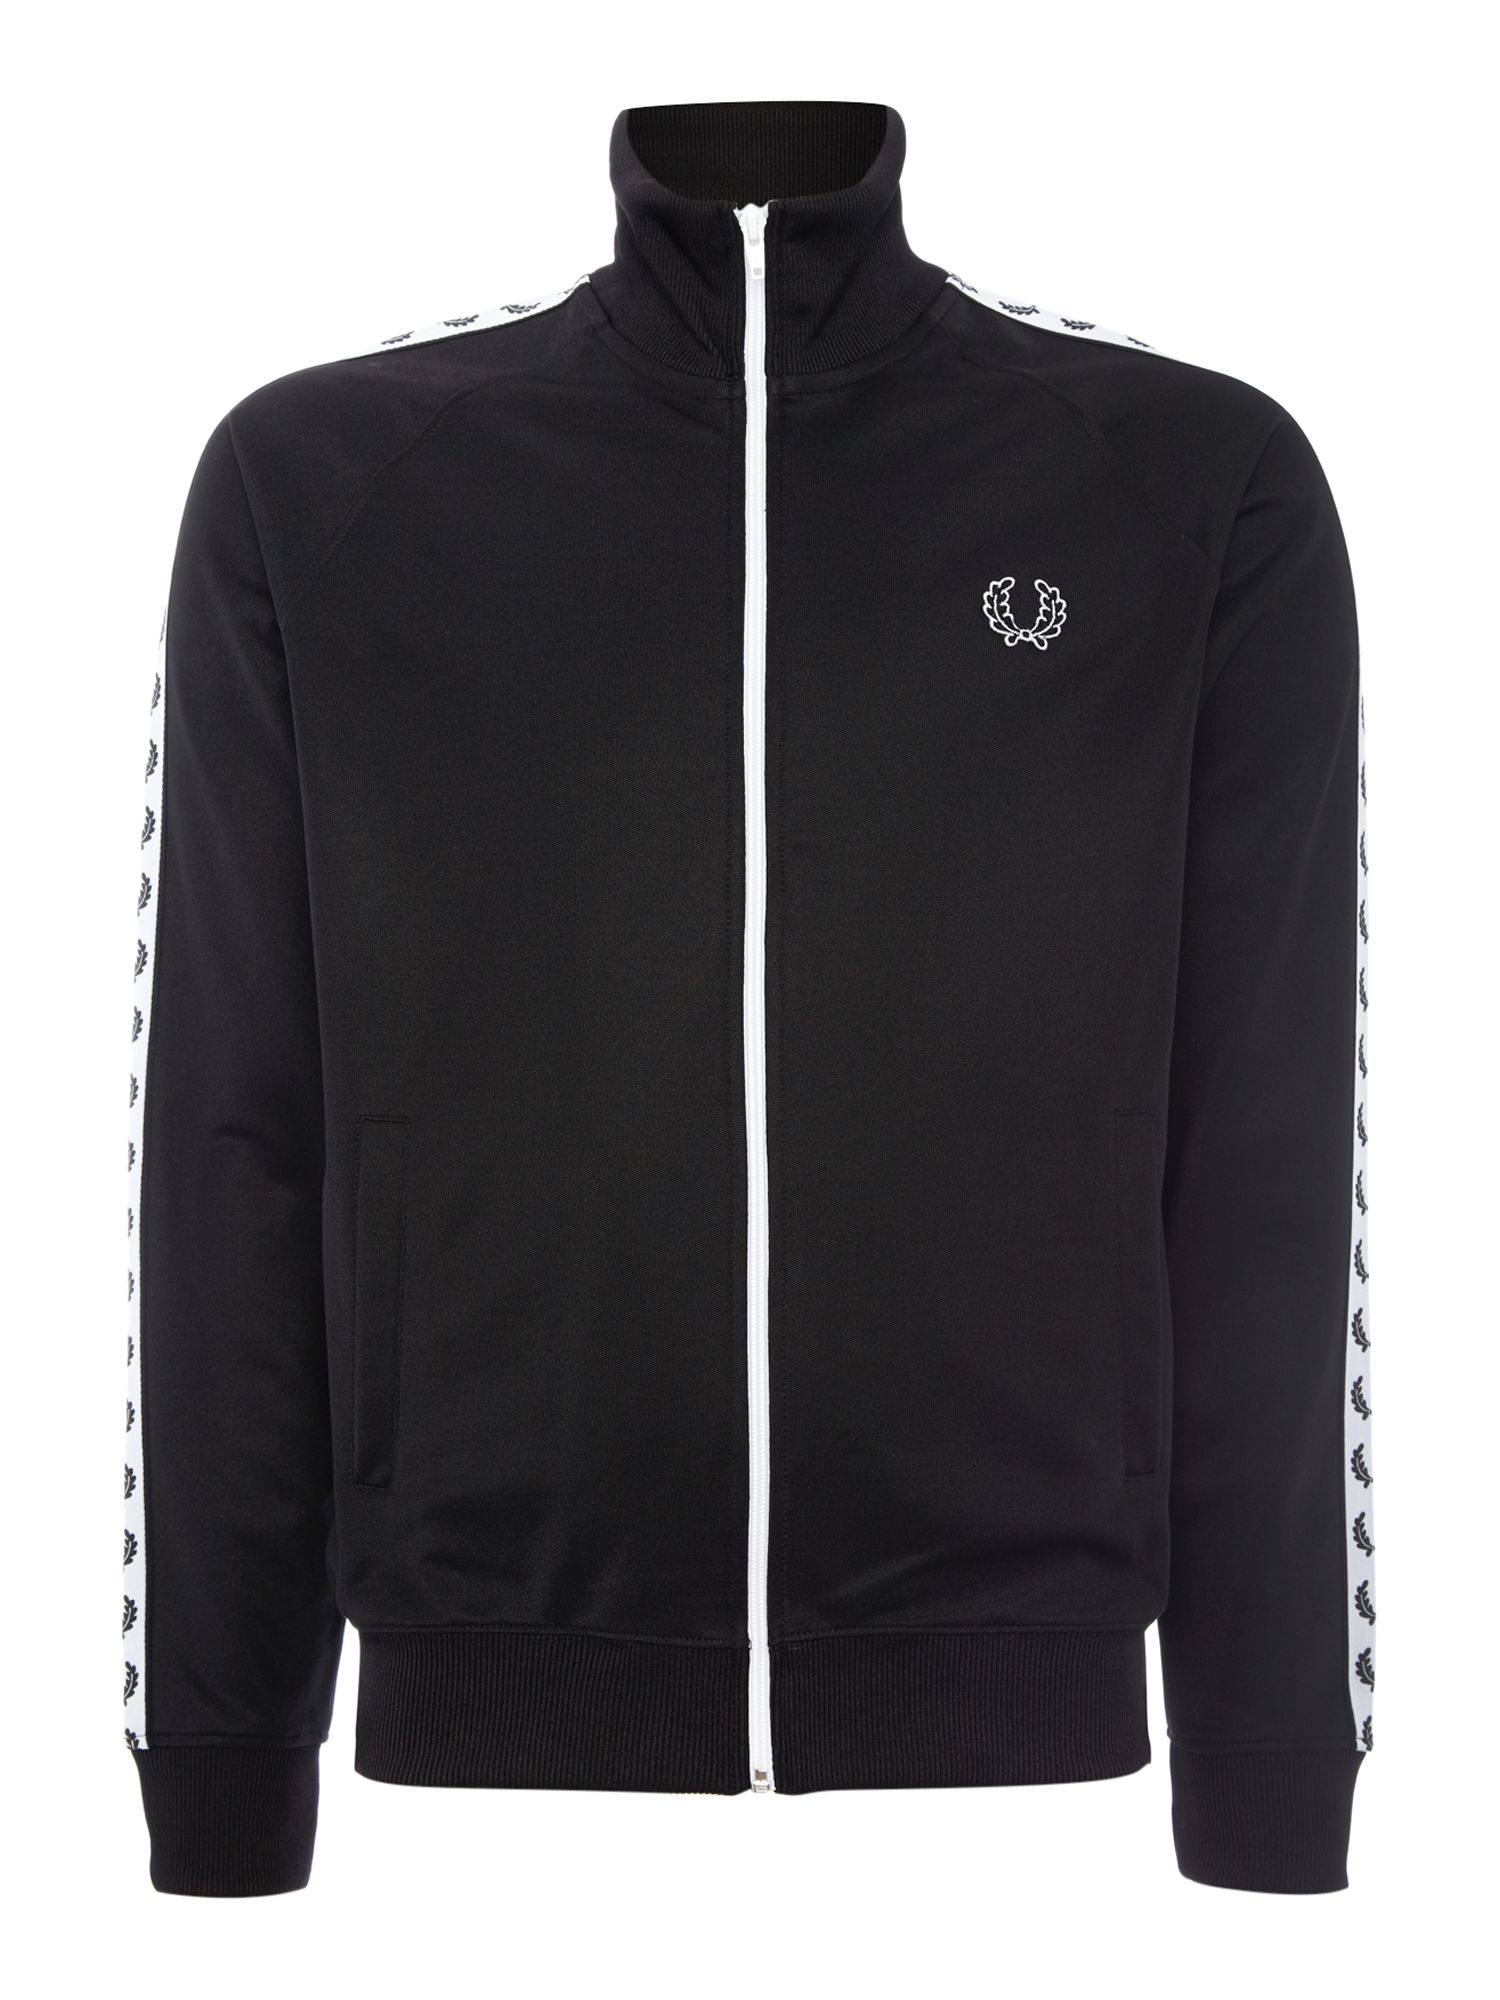 Men's Fred Perry Plain Funnel Neck Tracksuit, Black